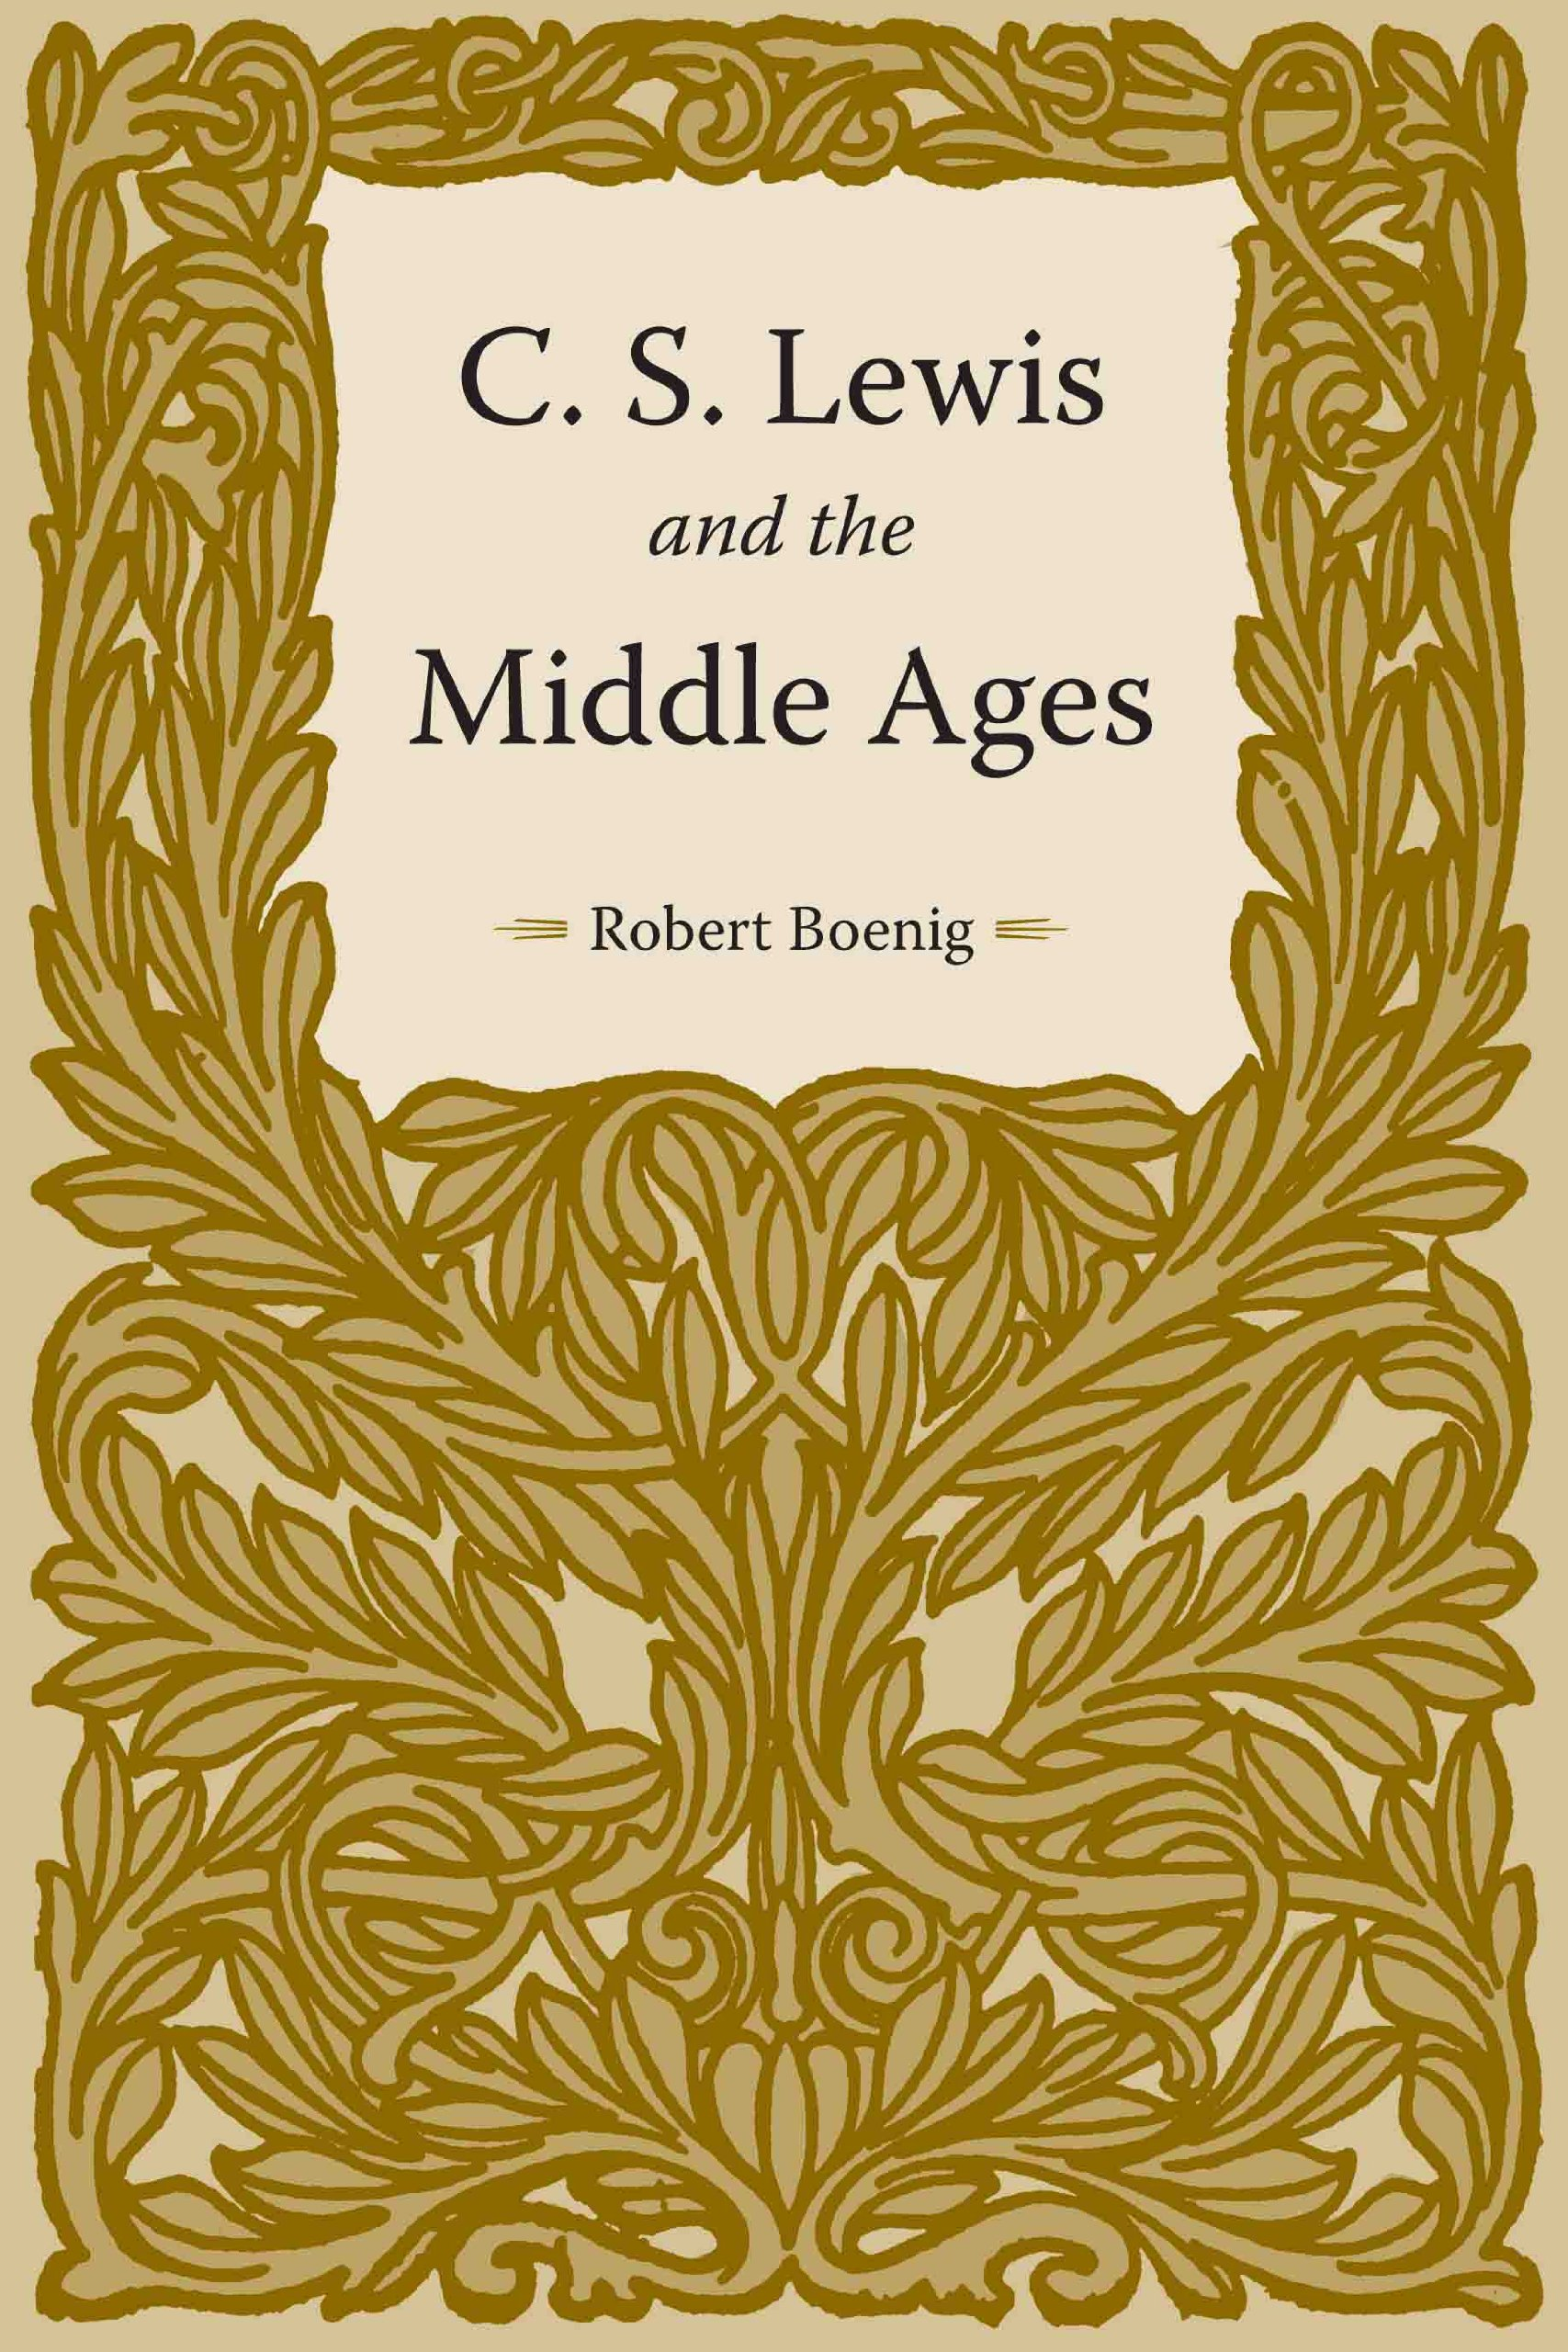 C.S. Lewis and the Middle Ages